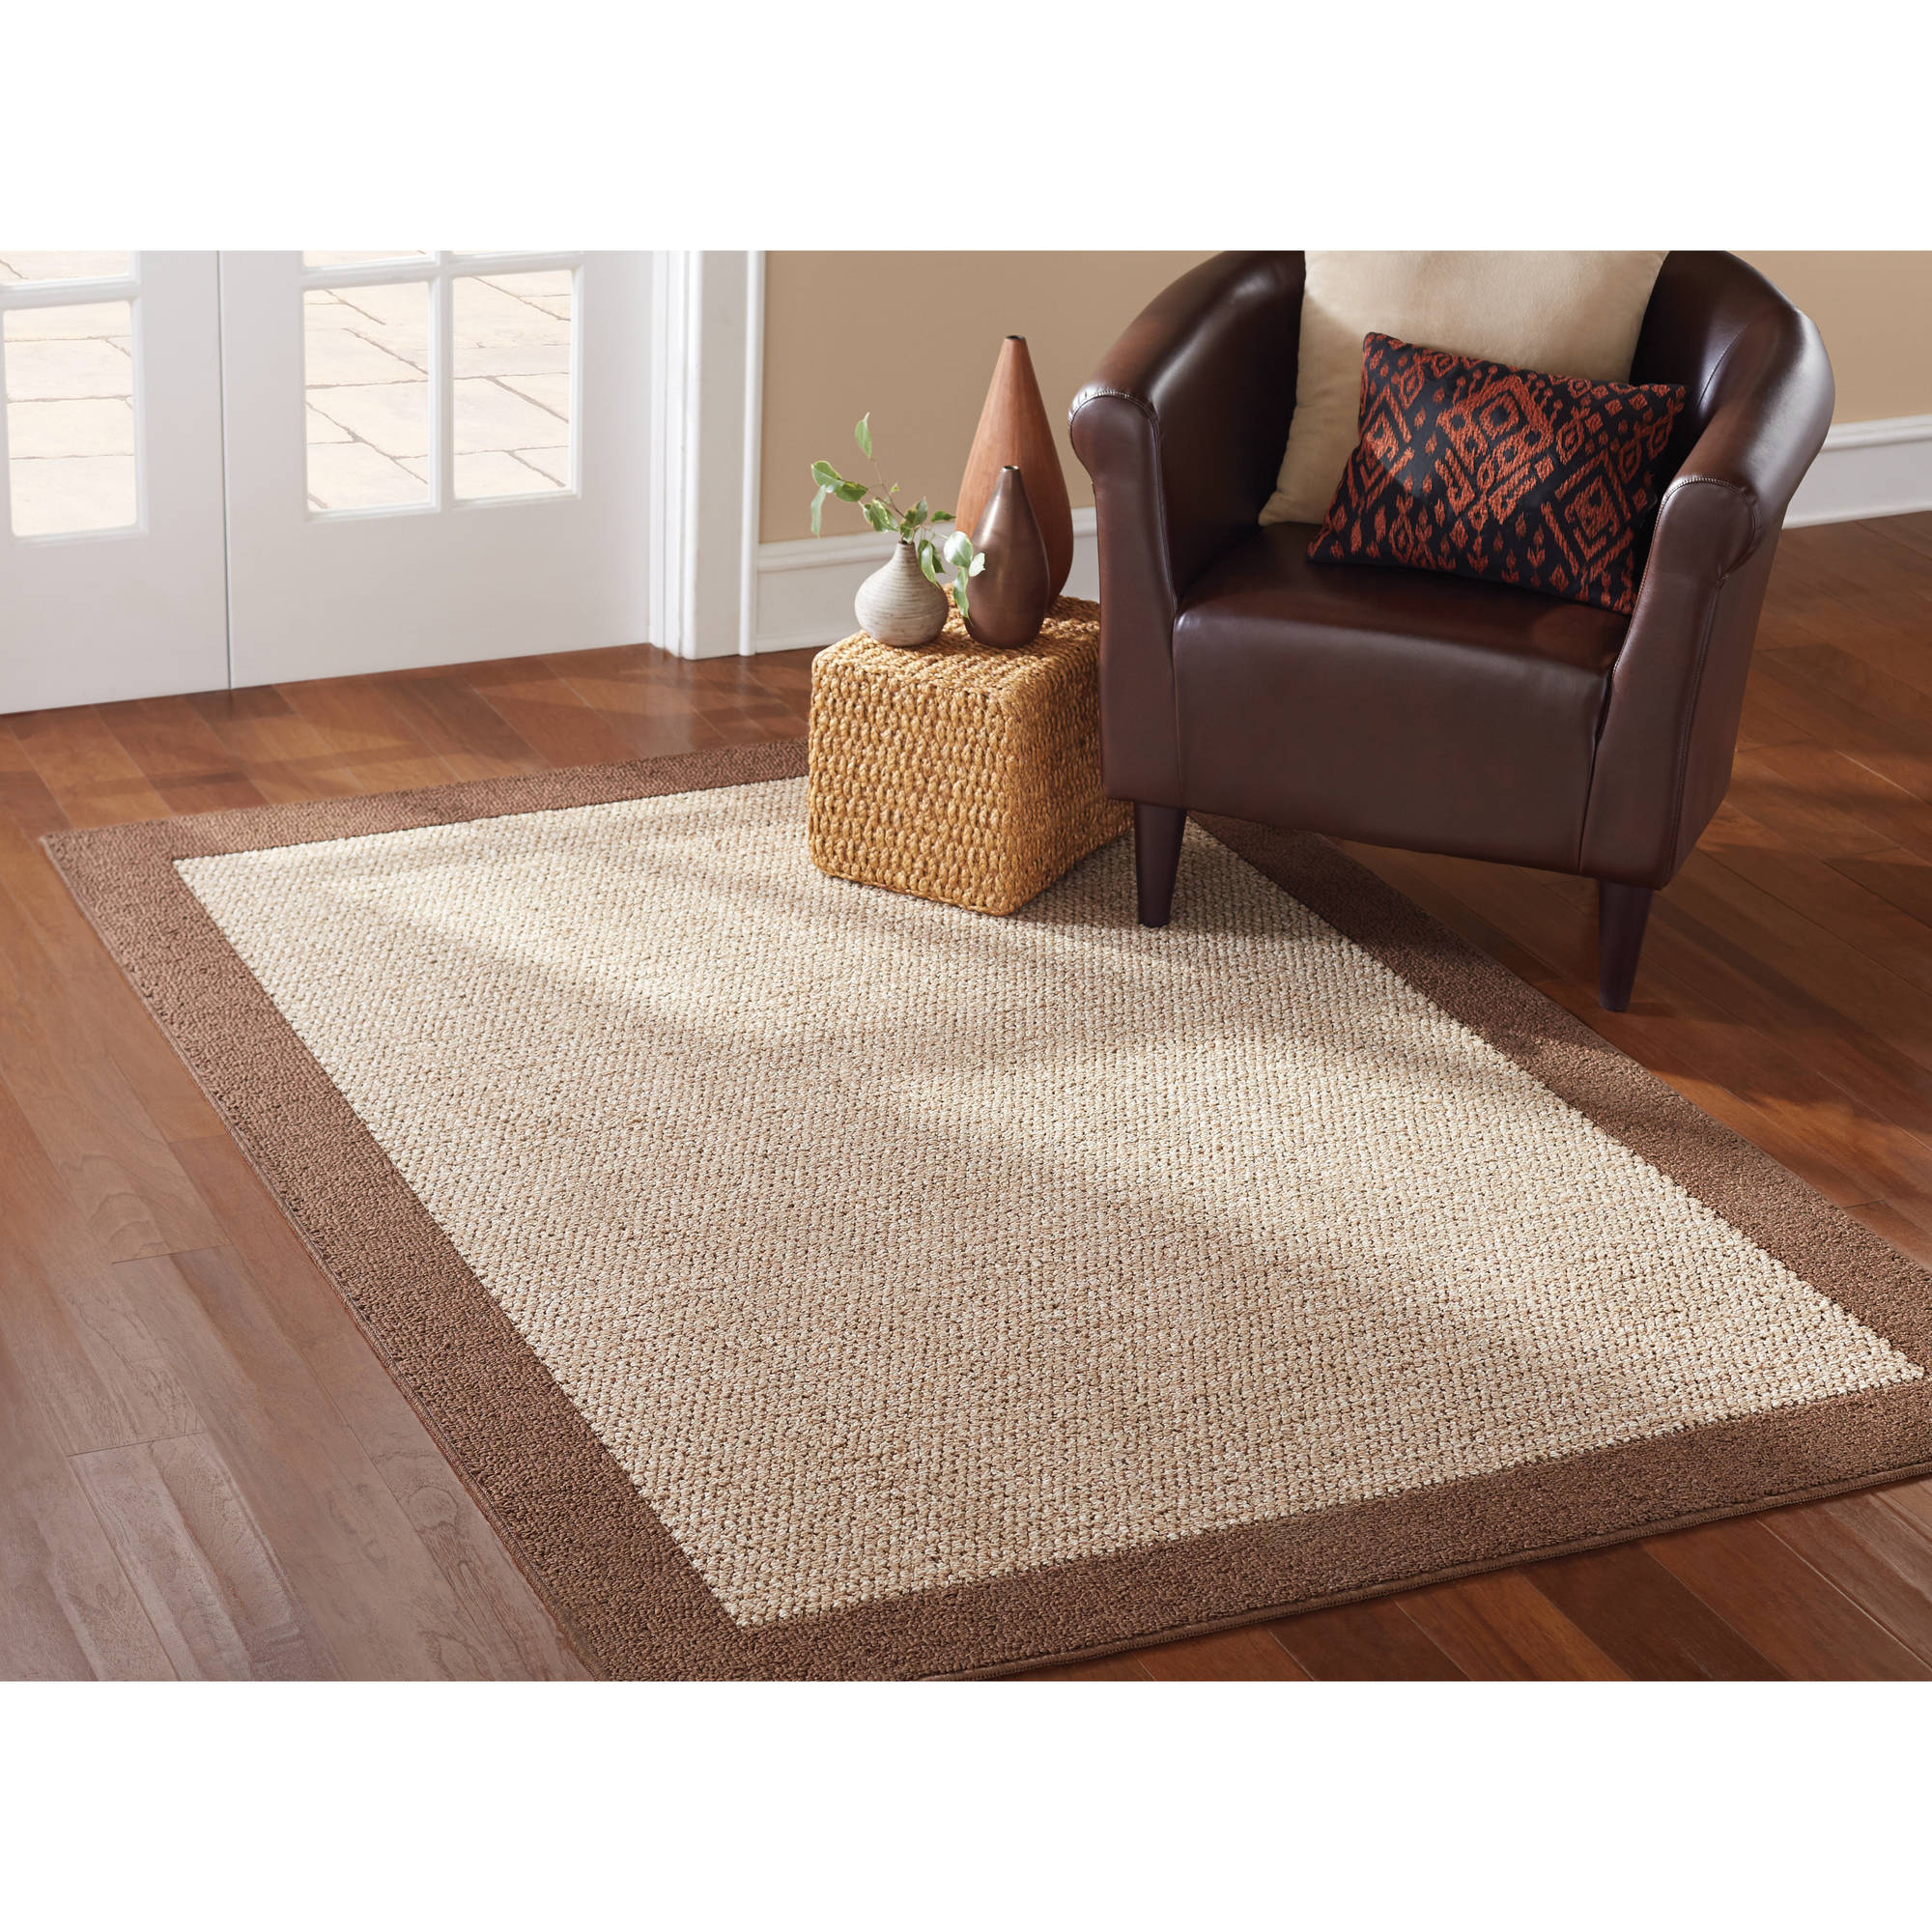 usa clearance cheap size x soft discount under rugs room customer oversized amazon area rug living target bedroom near service breathtaking me direct full of